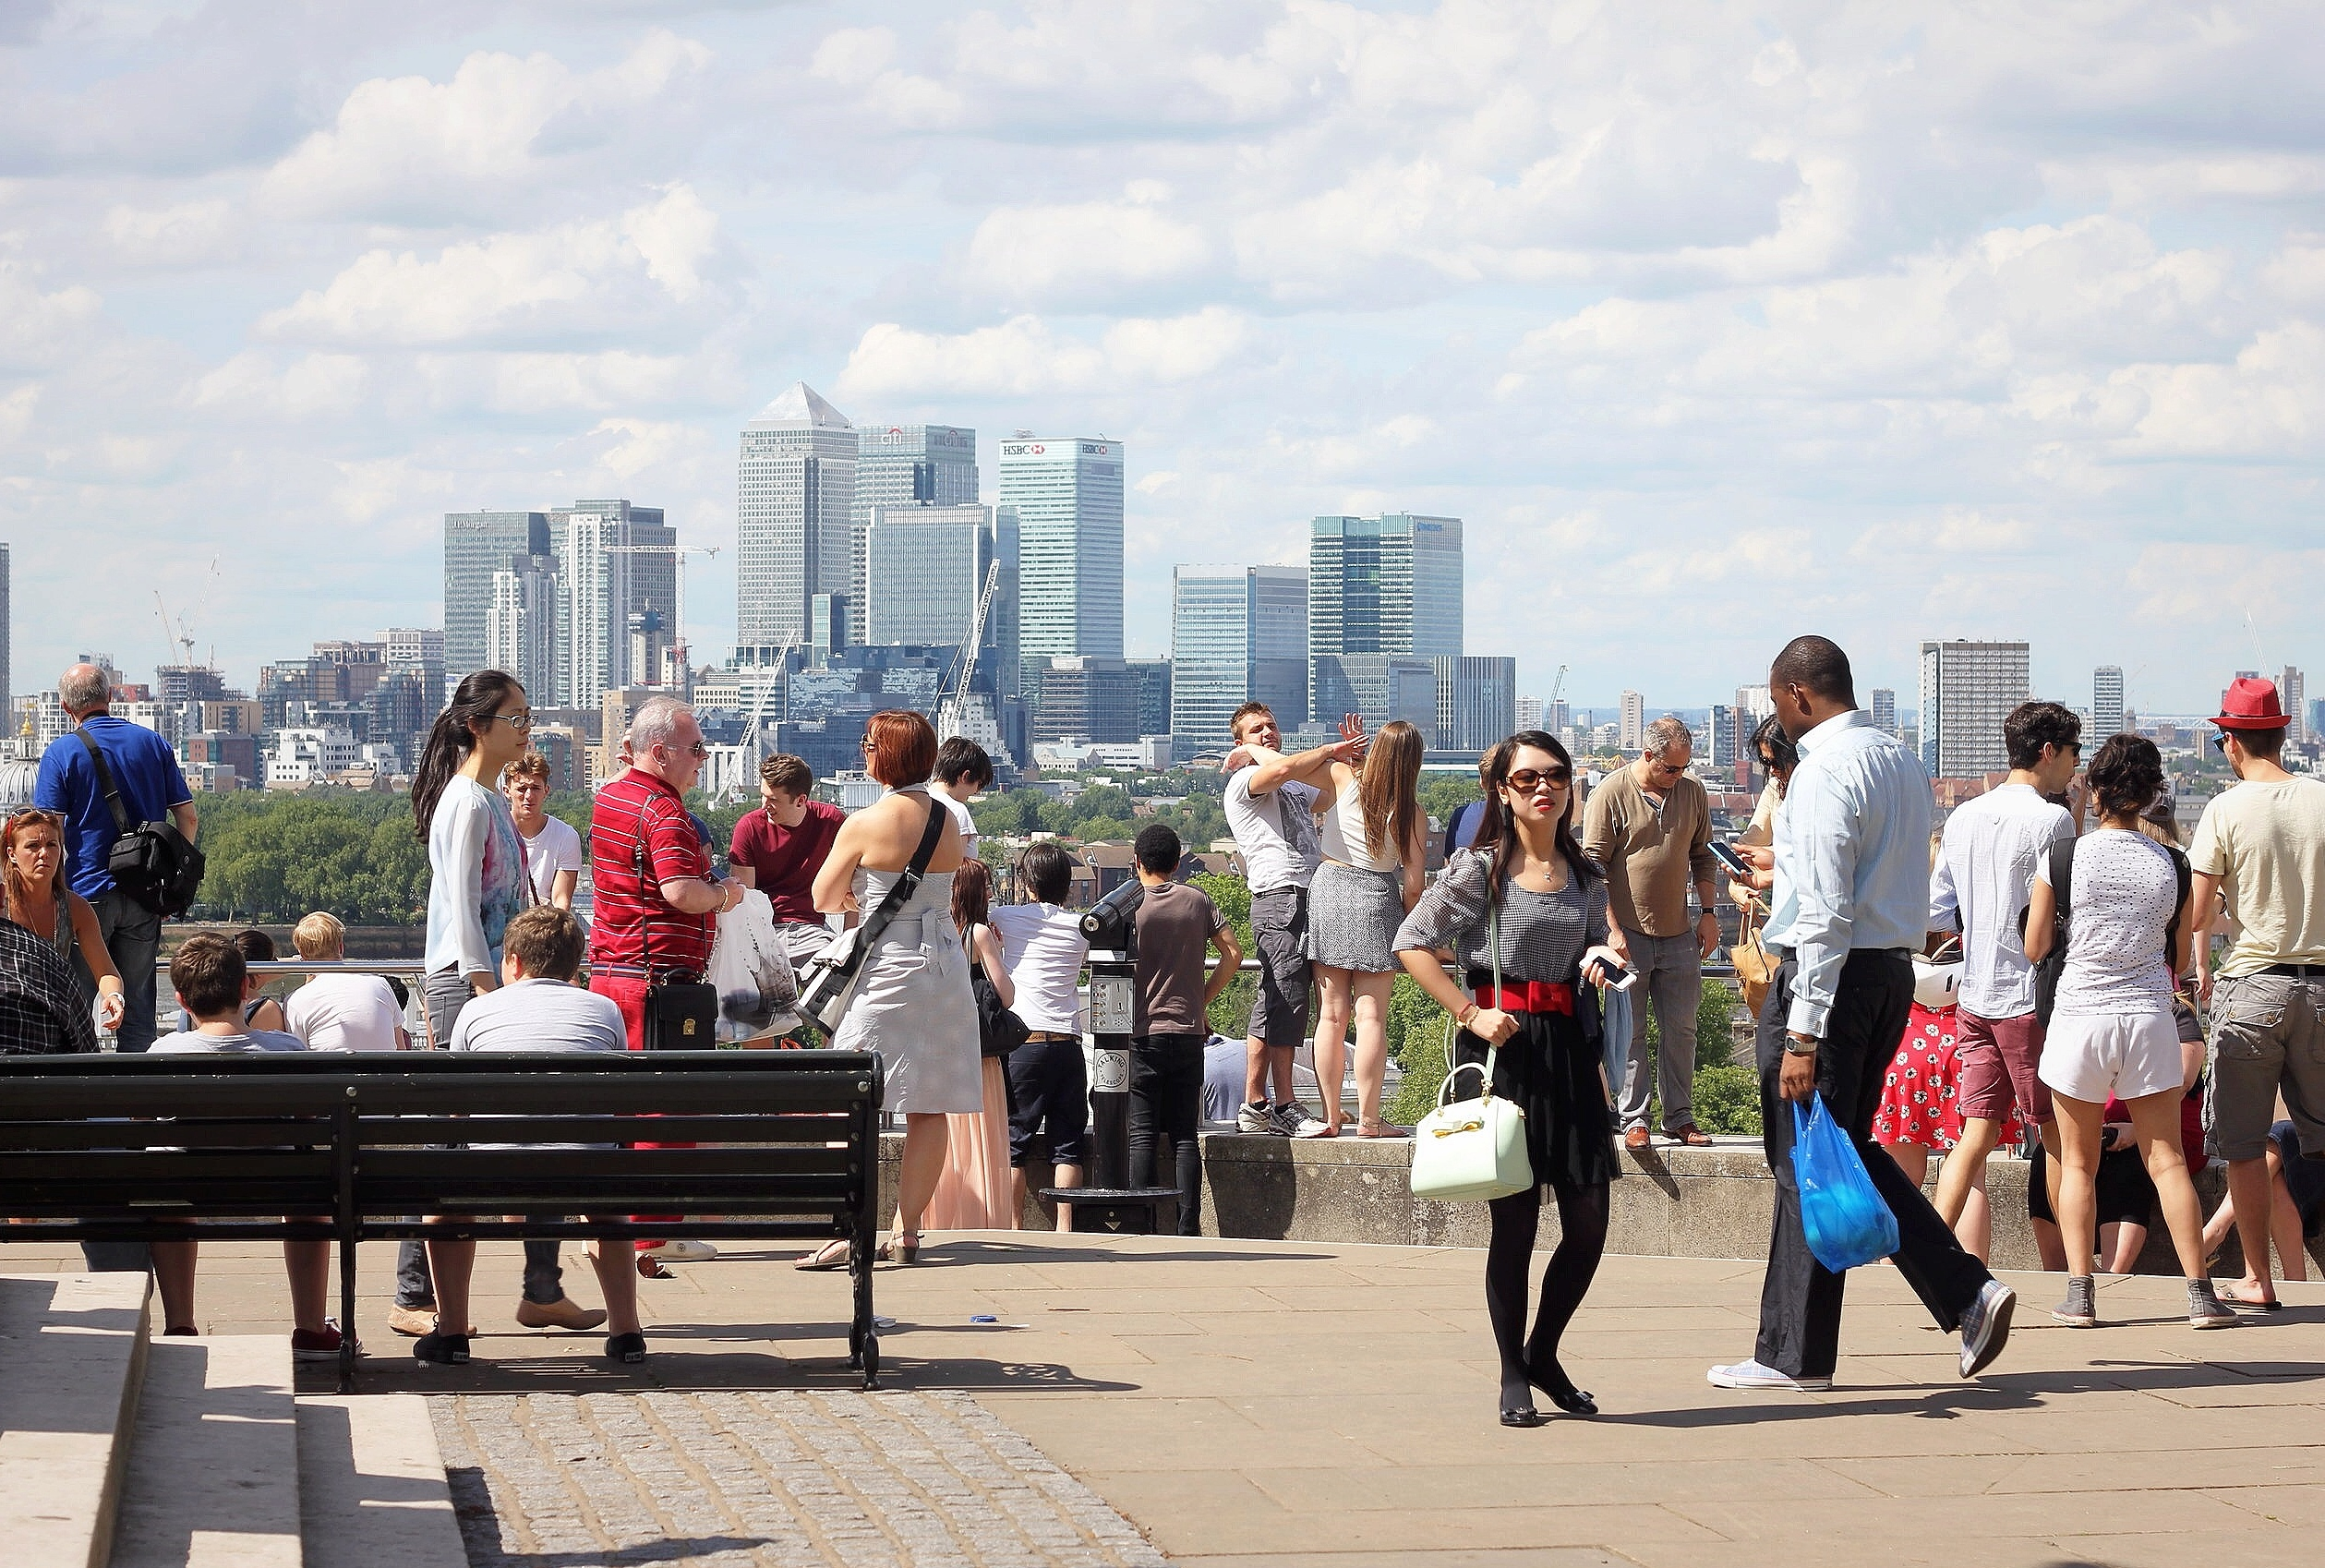 Greenwich viewpoint, London